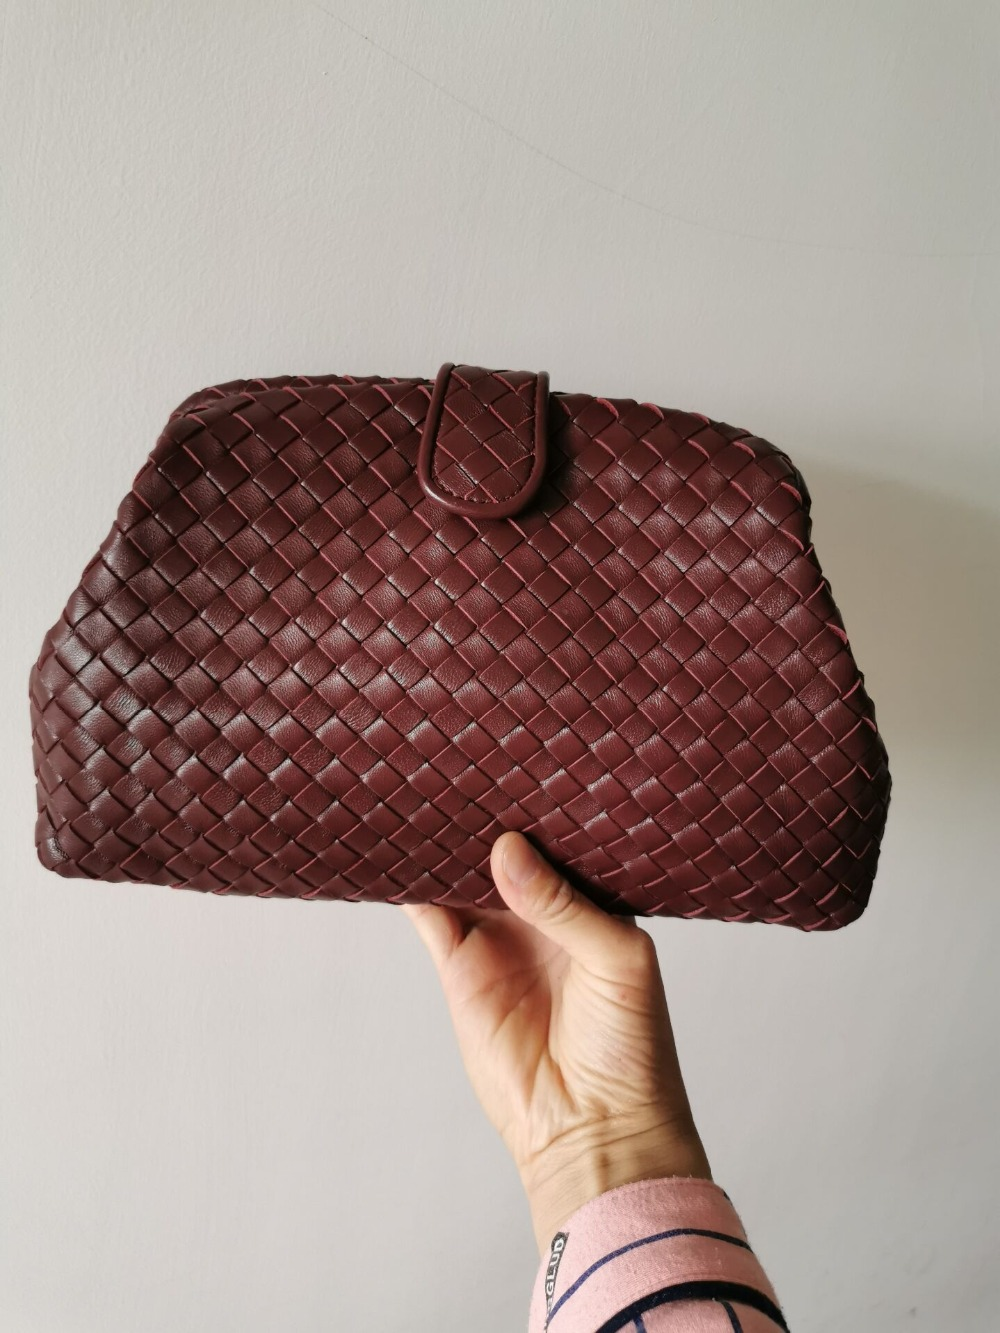 High Quality Fashion Women Clutch Bag 2019 Newest Style Sheepskin Handmade Woven Bags Hand bag